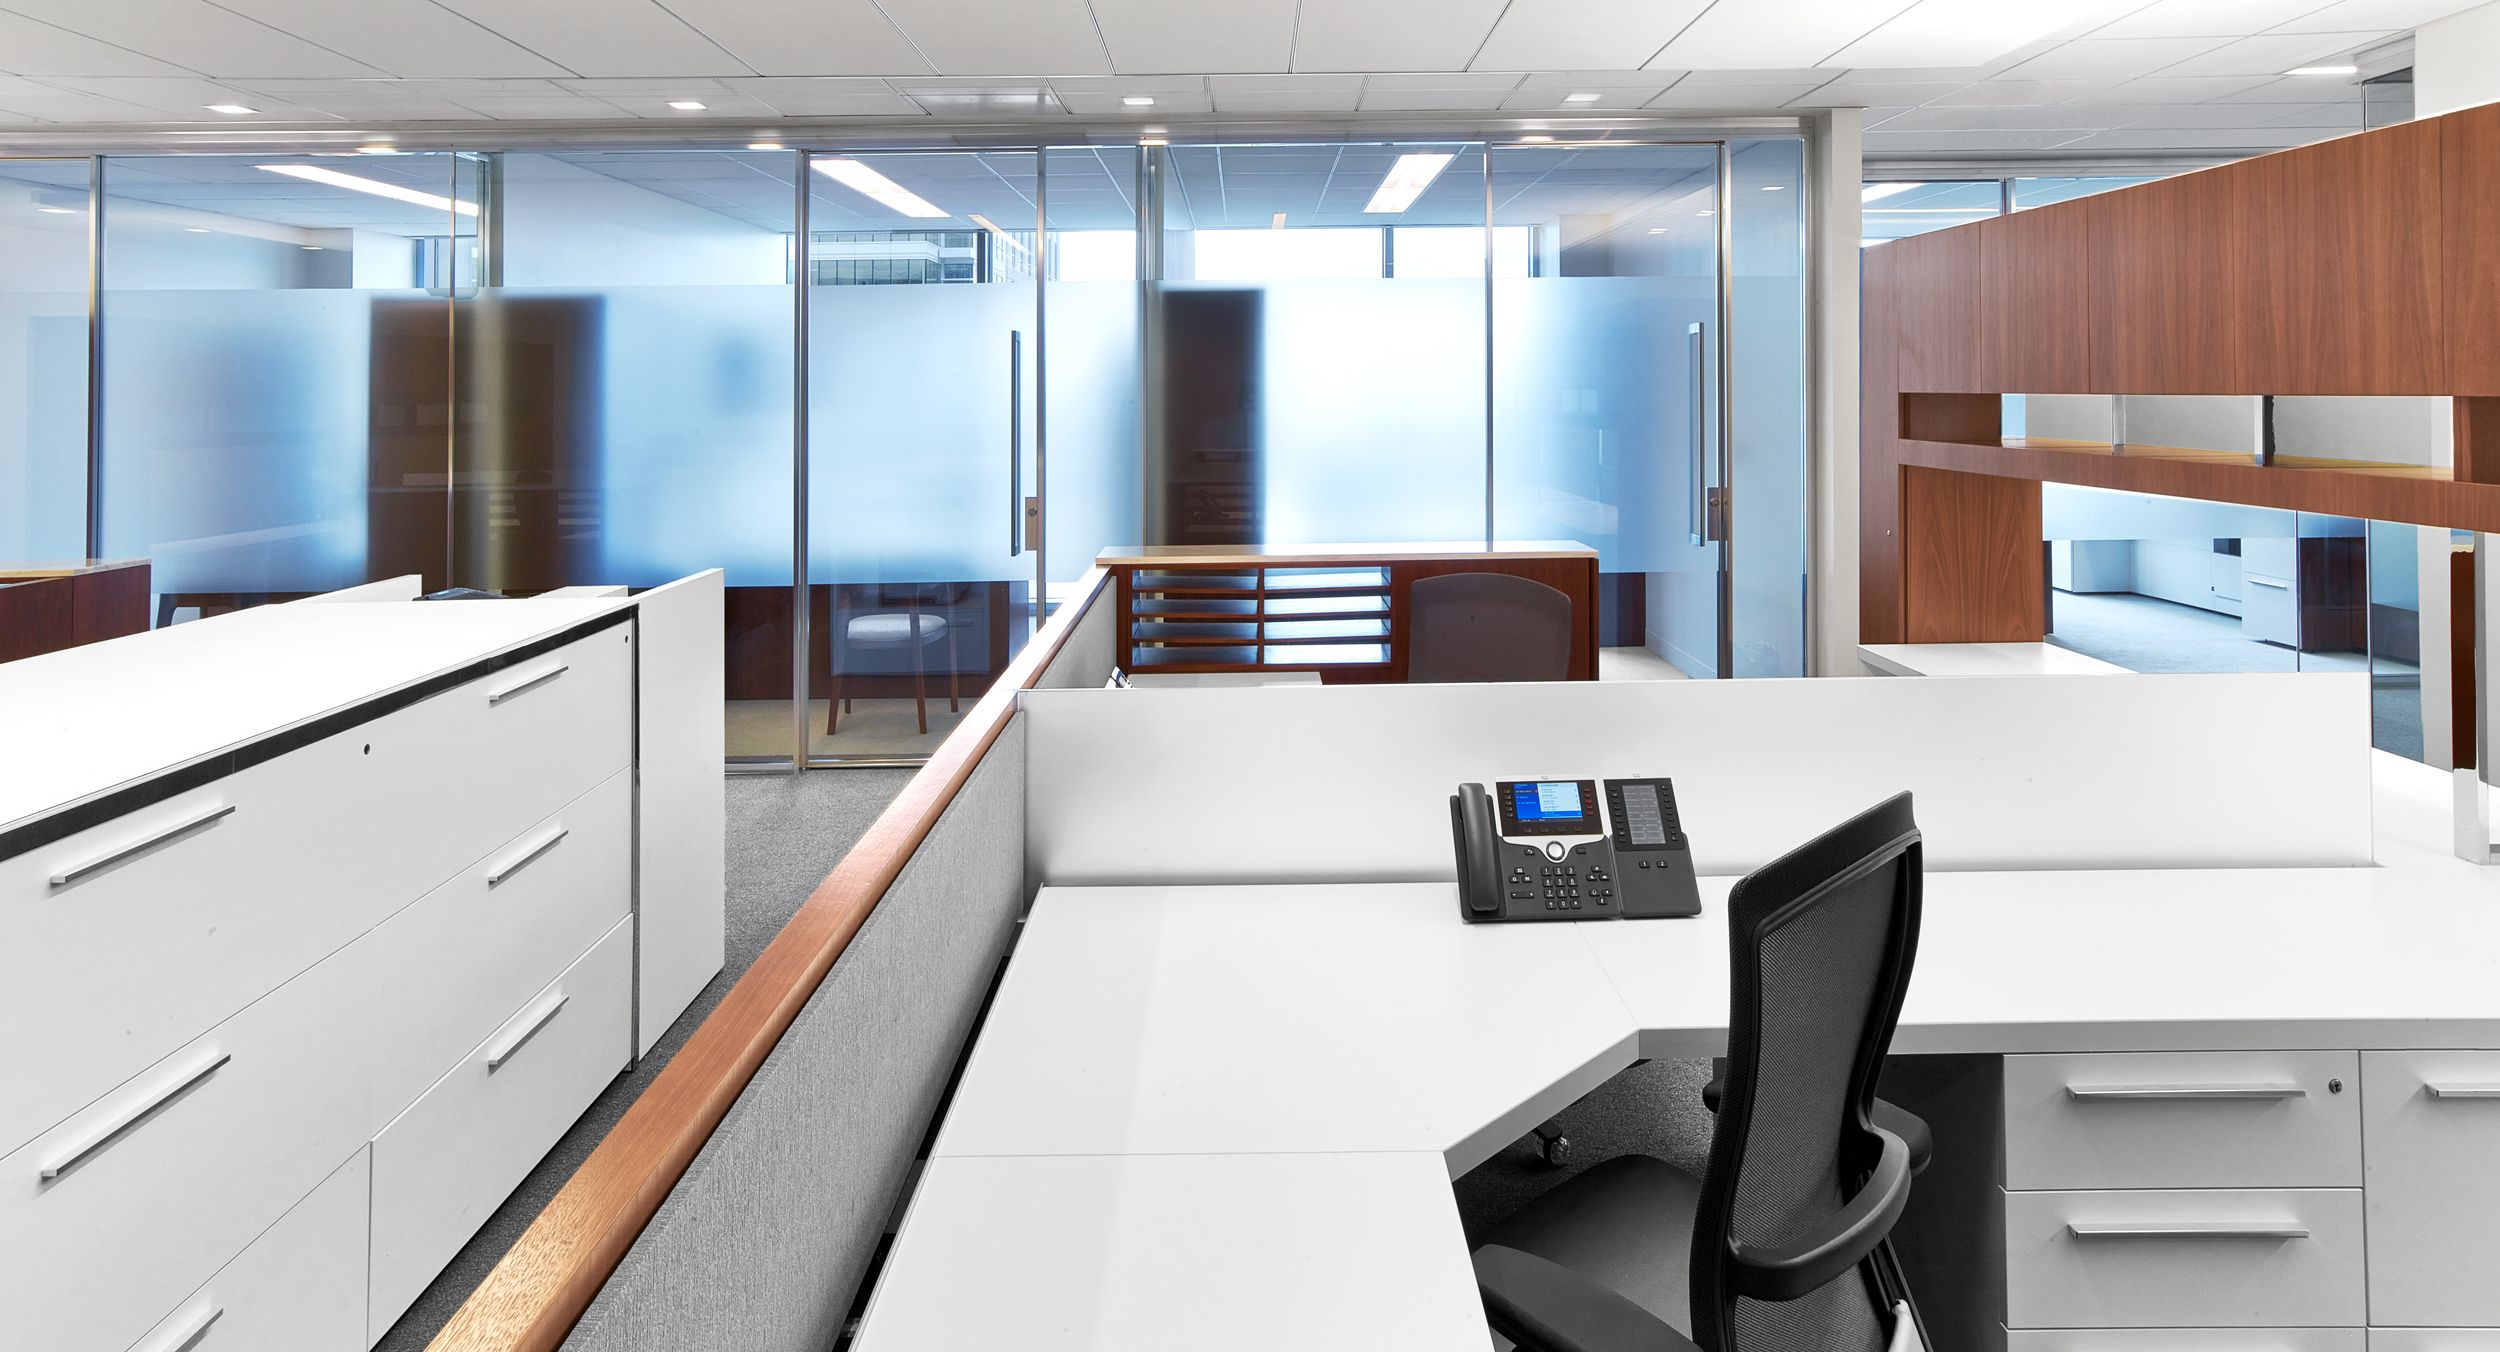 Workstations feature a full range of materials with walnut veneers, laminate, chrome, fabric, etched glass, and stone.